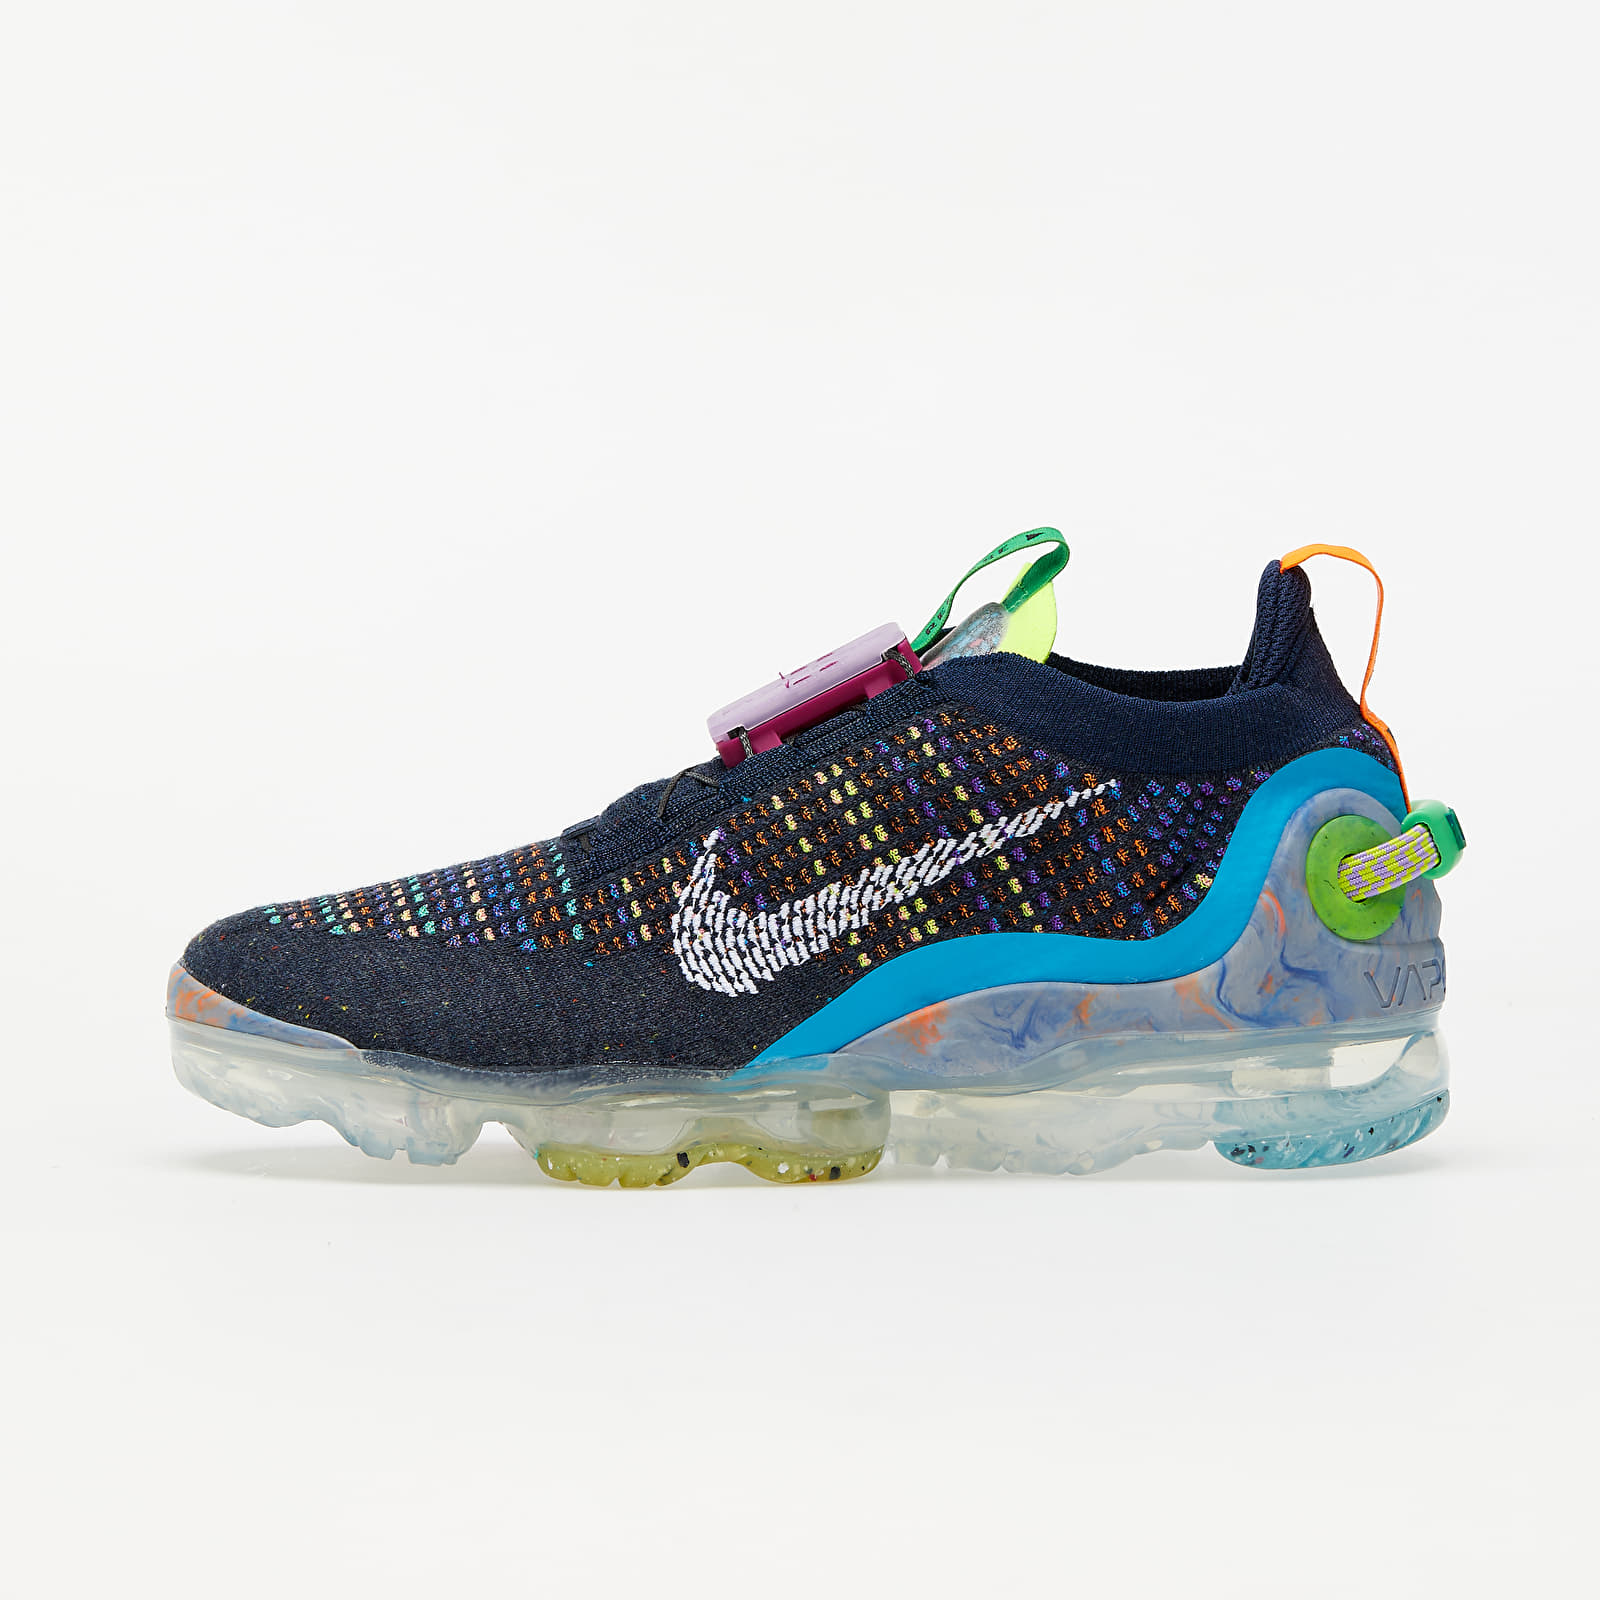 Nike W Air Vapormax 2020 FK Deep Royal Blue/ White-Multi-Color CJ6741-400